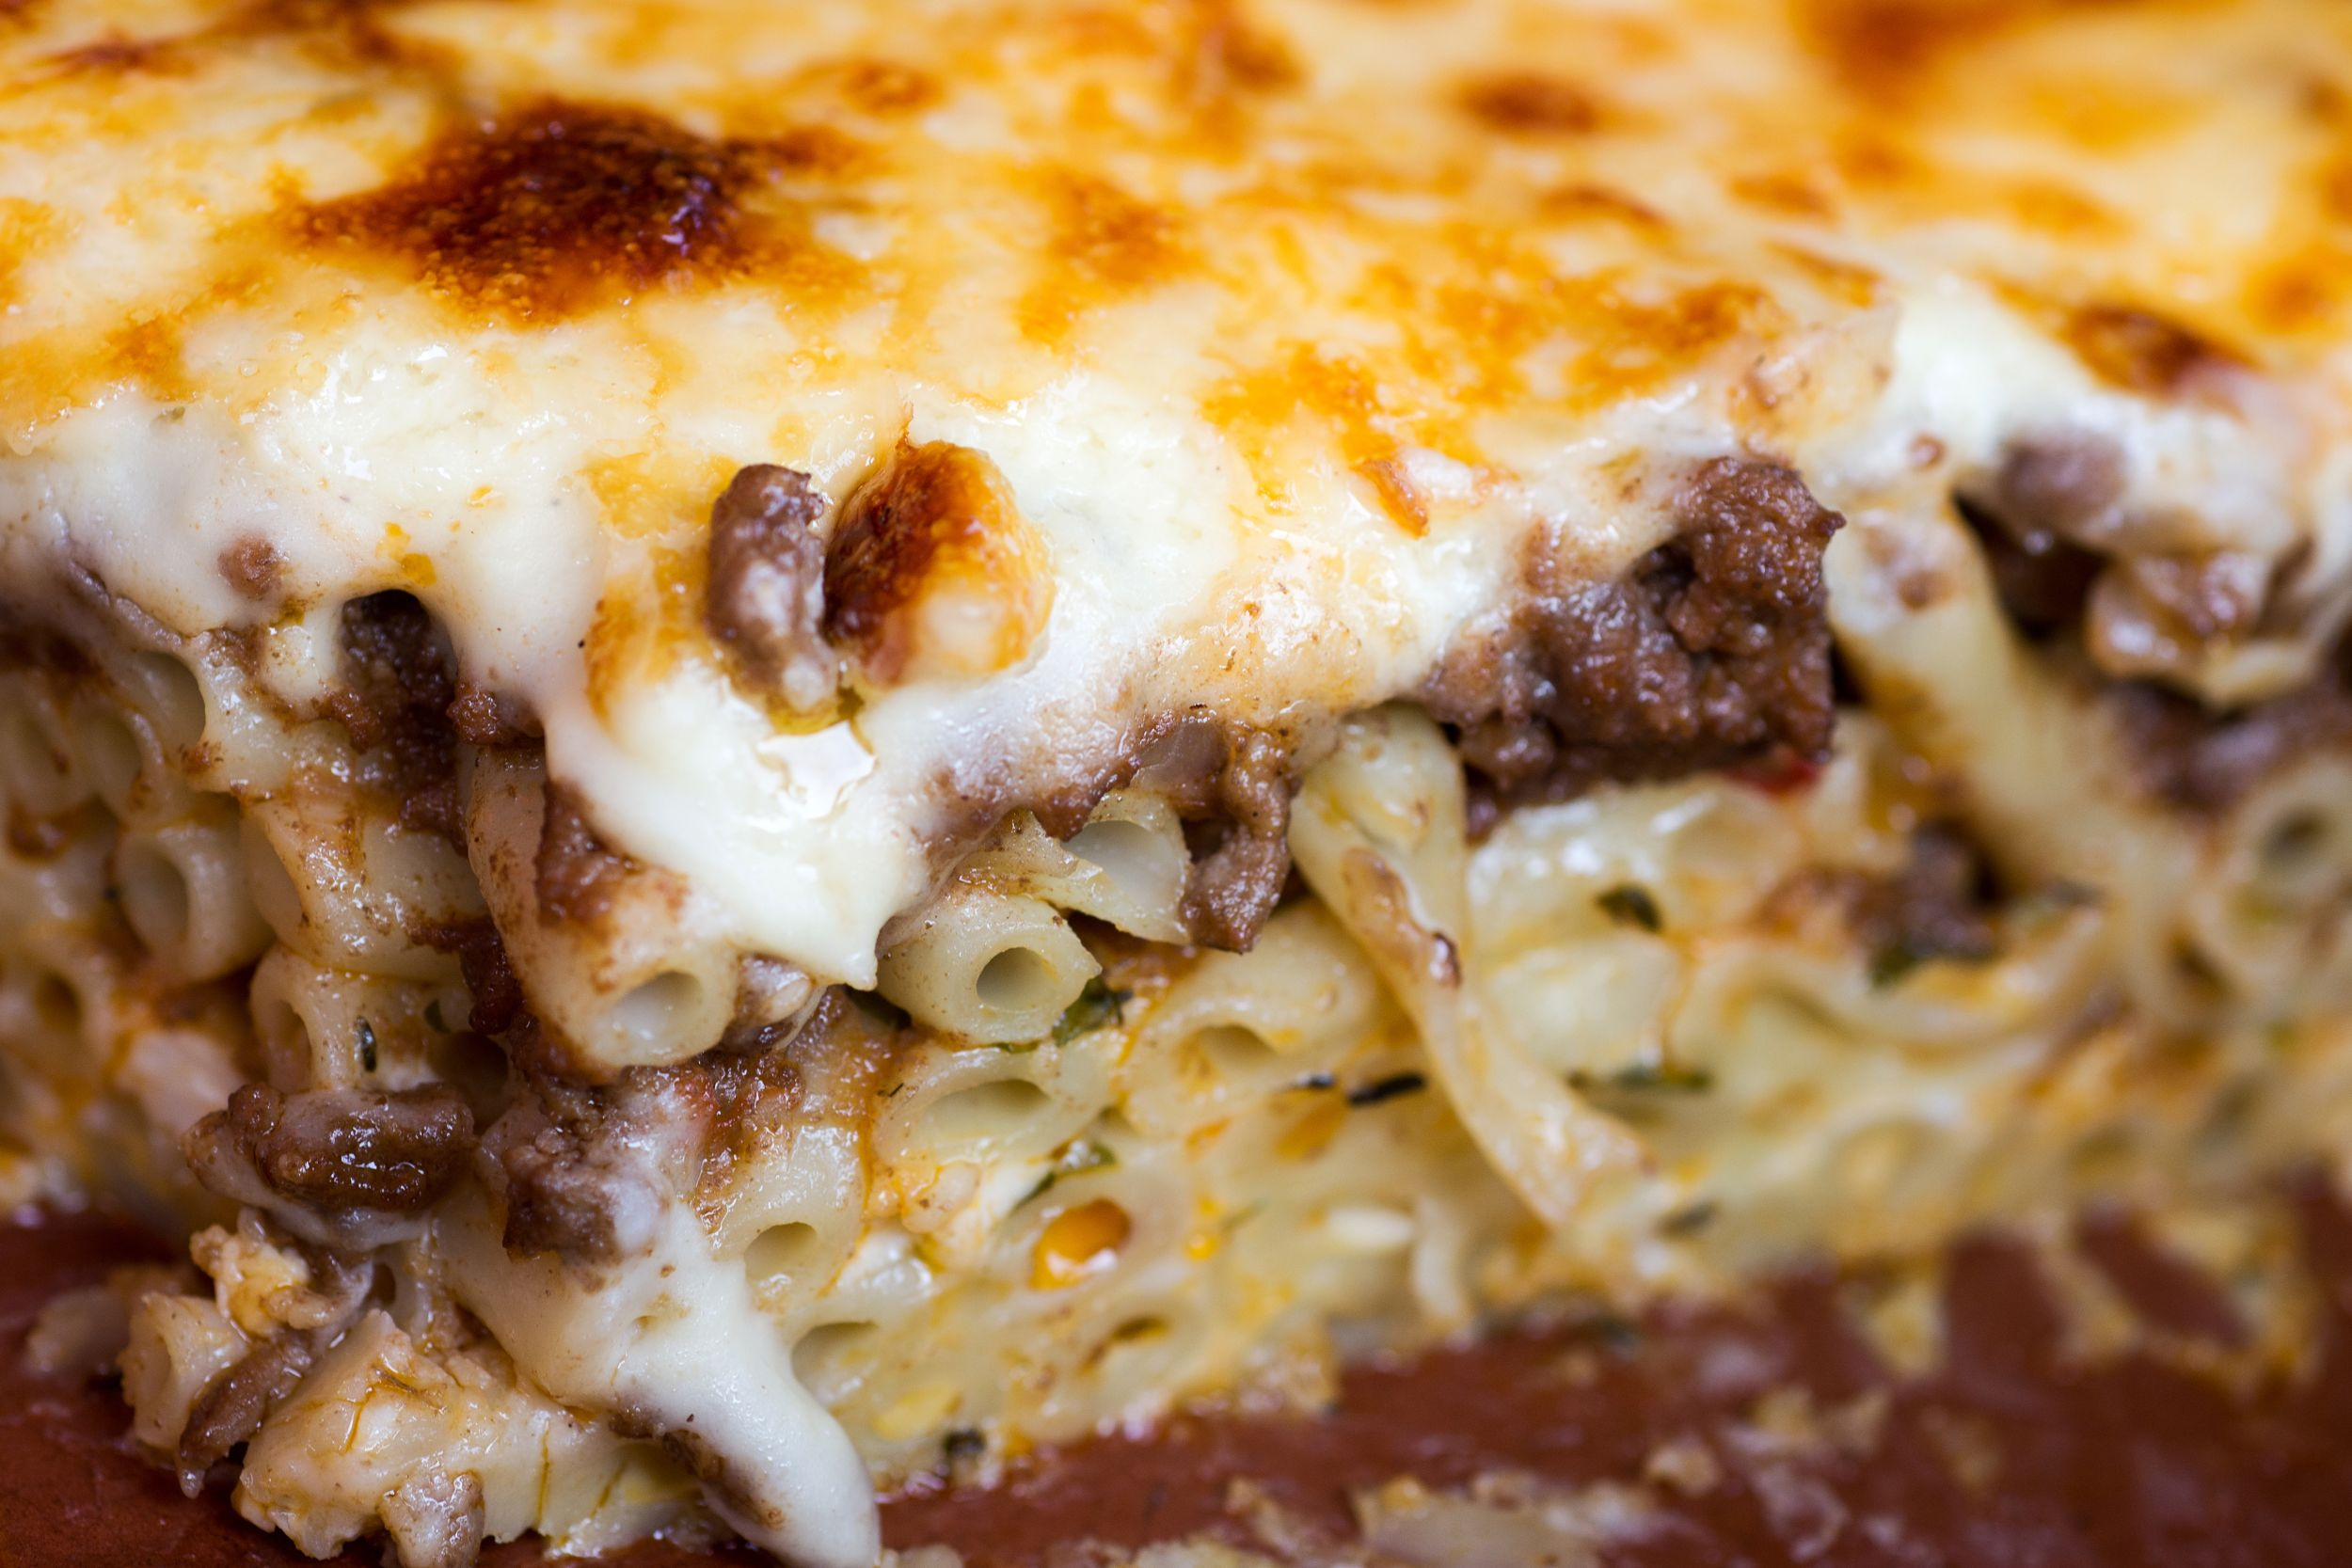 Canva - Pastitsio Traditional Greek Baked Pasta Casserole With Ground Beef, Tomatoes, Feta Cheese and Bechamel Sauce